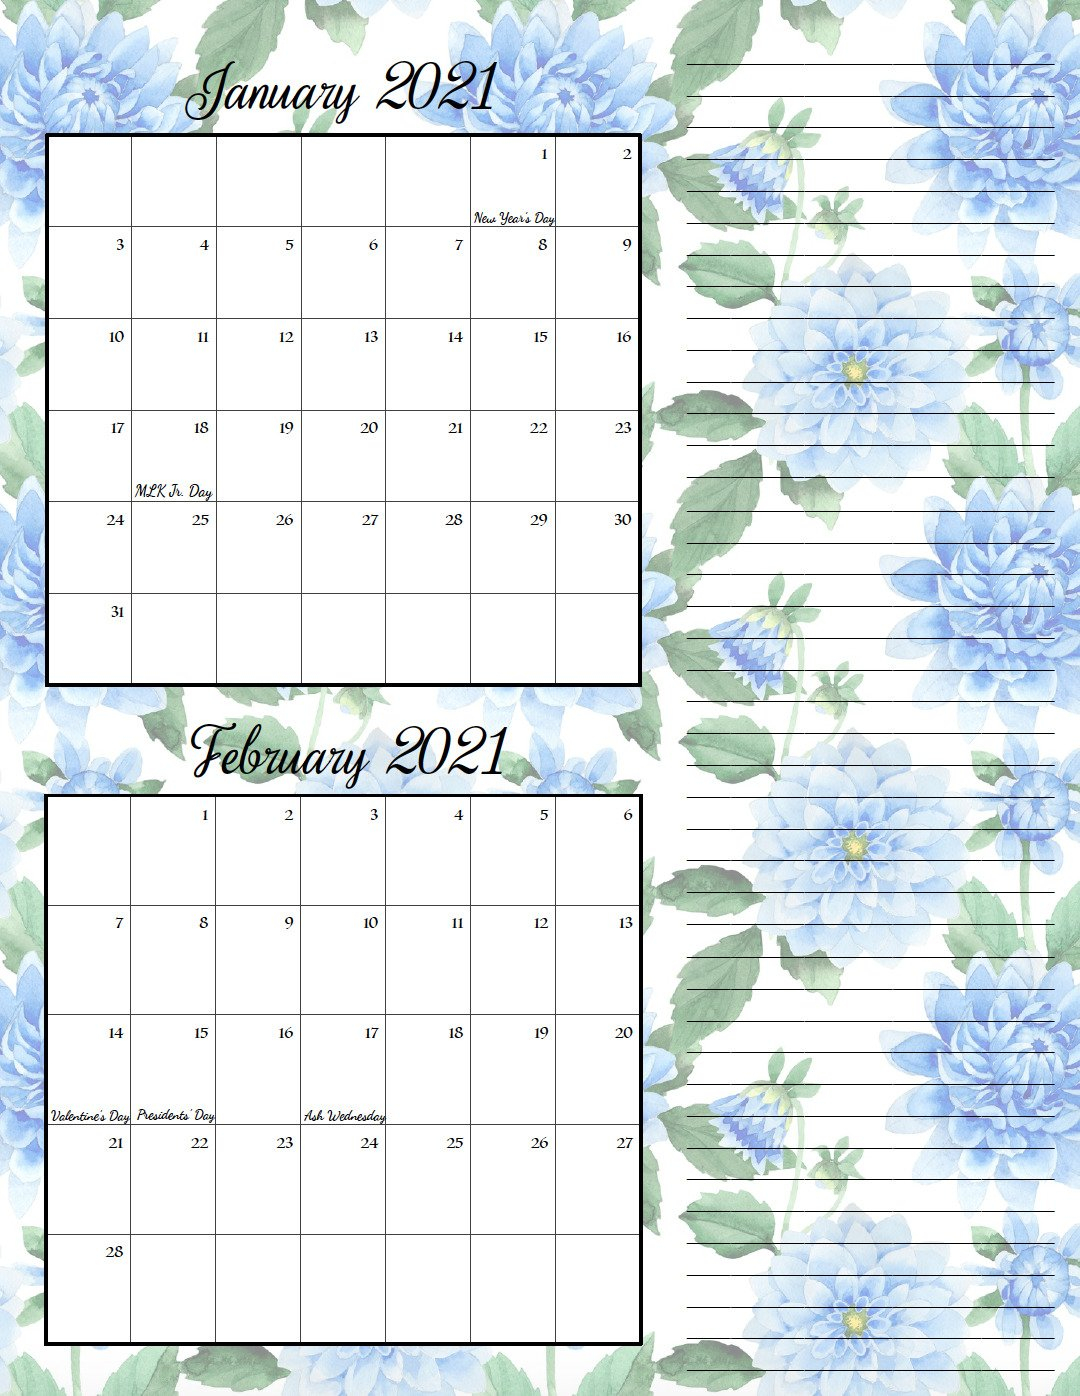 Calendars Free Weekly Calendar Fillable With Times Starting At 6Am